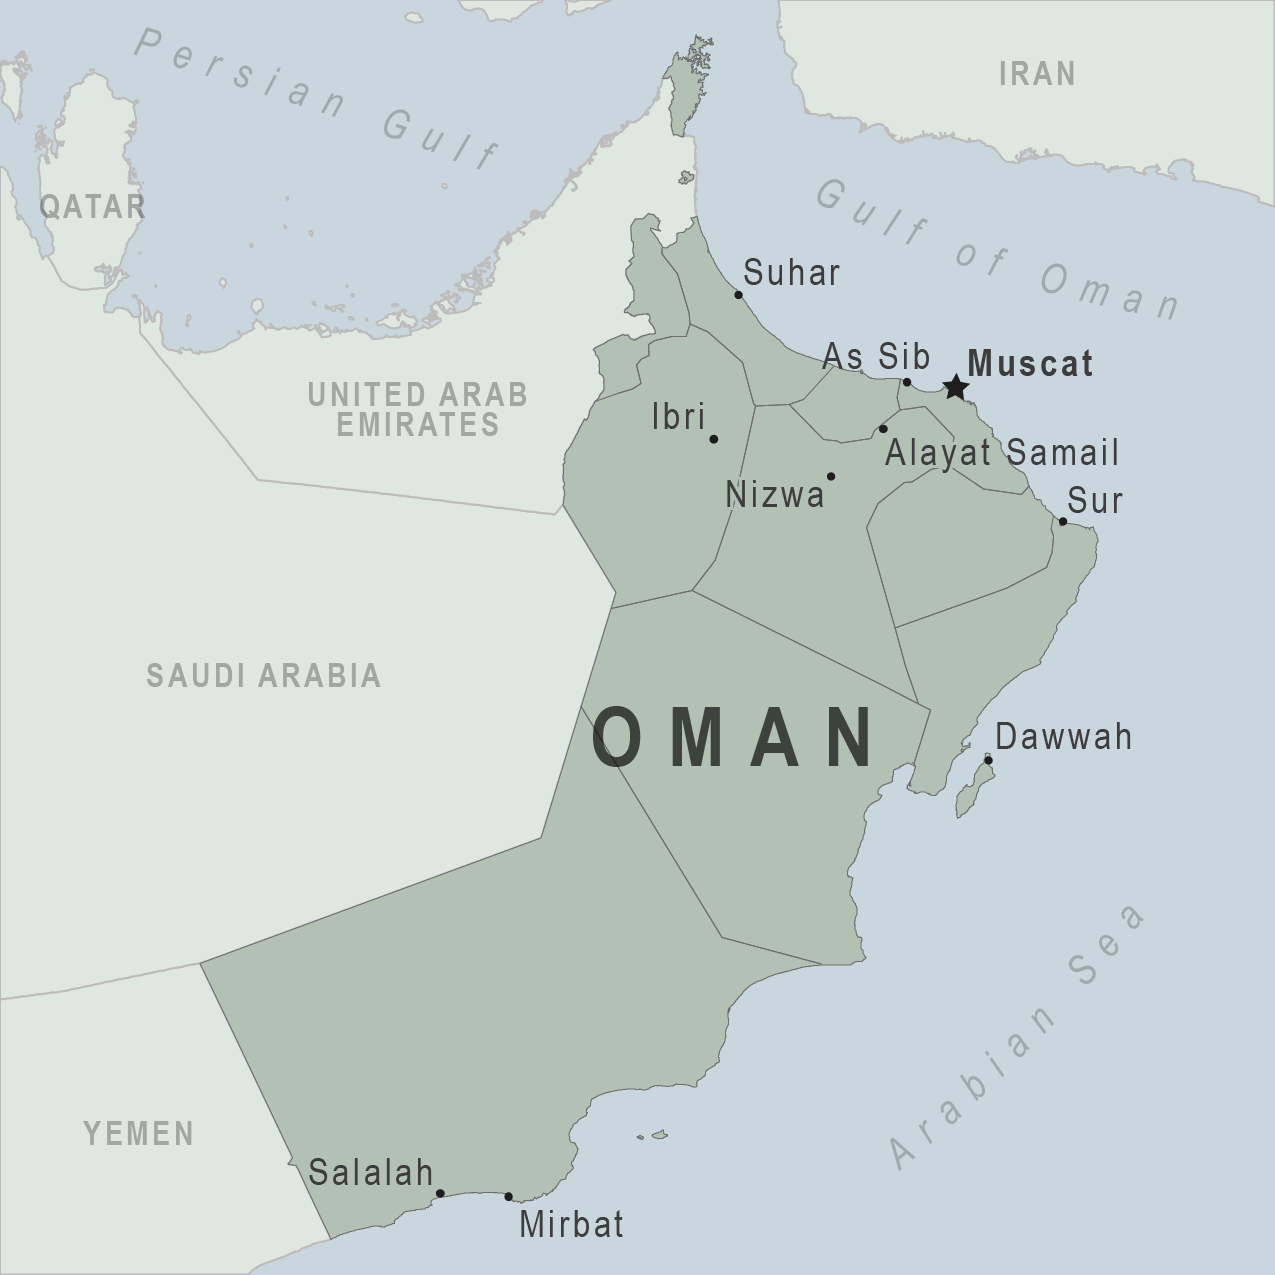 oman is located on southeastern corner of the arabian peninsula it shares borders with yemen saudi arabia and the united arab emirates uae